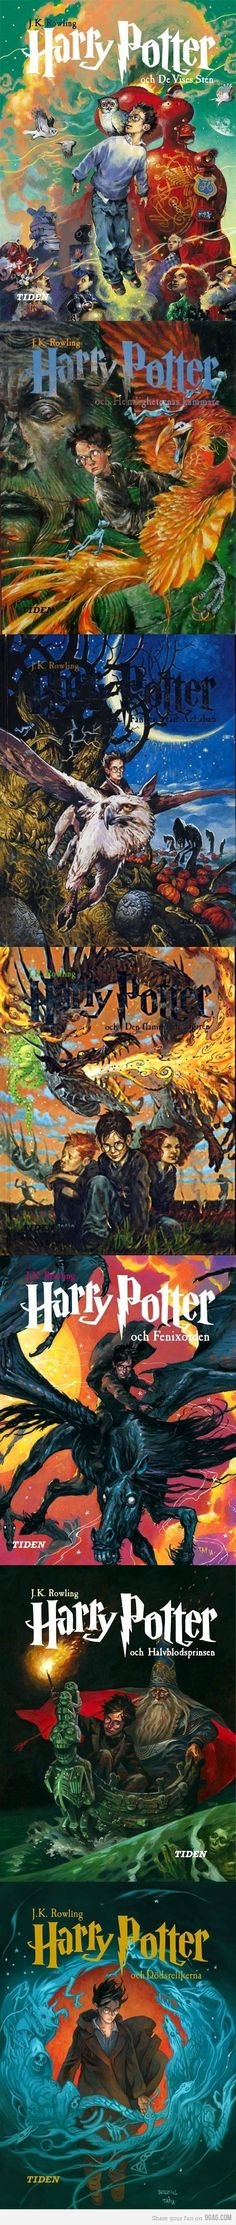 Harry Potter Swedish book covers... epic compared to the U.S. covers!